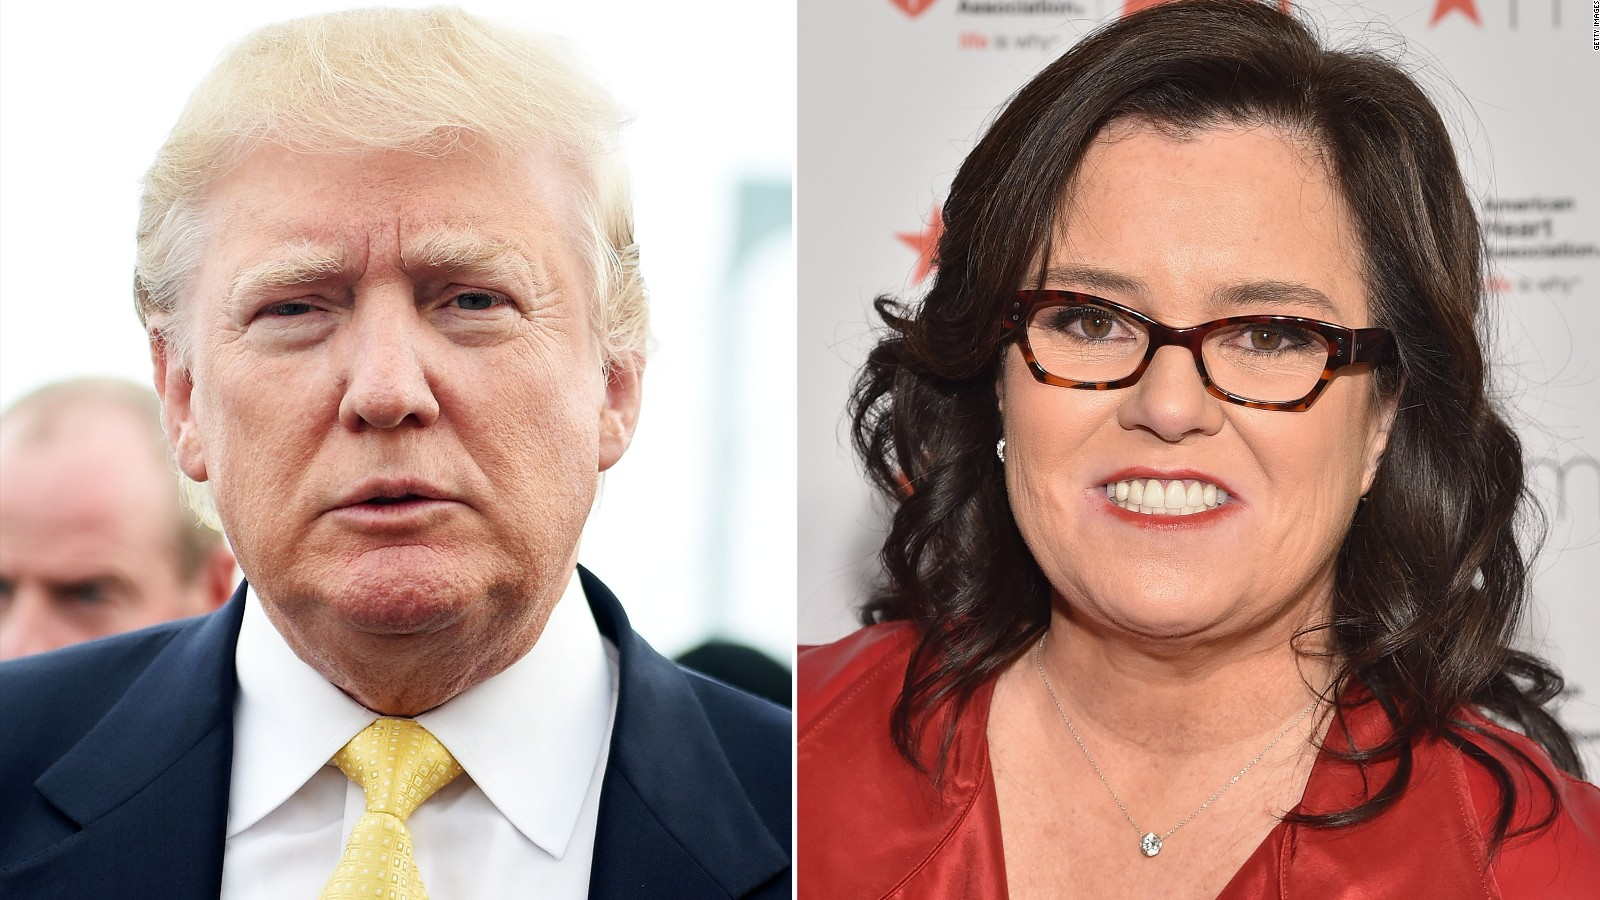 The Donald Trump-Rosie O'Donnell feud: A timeline ...